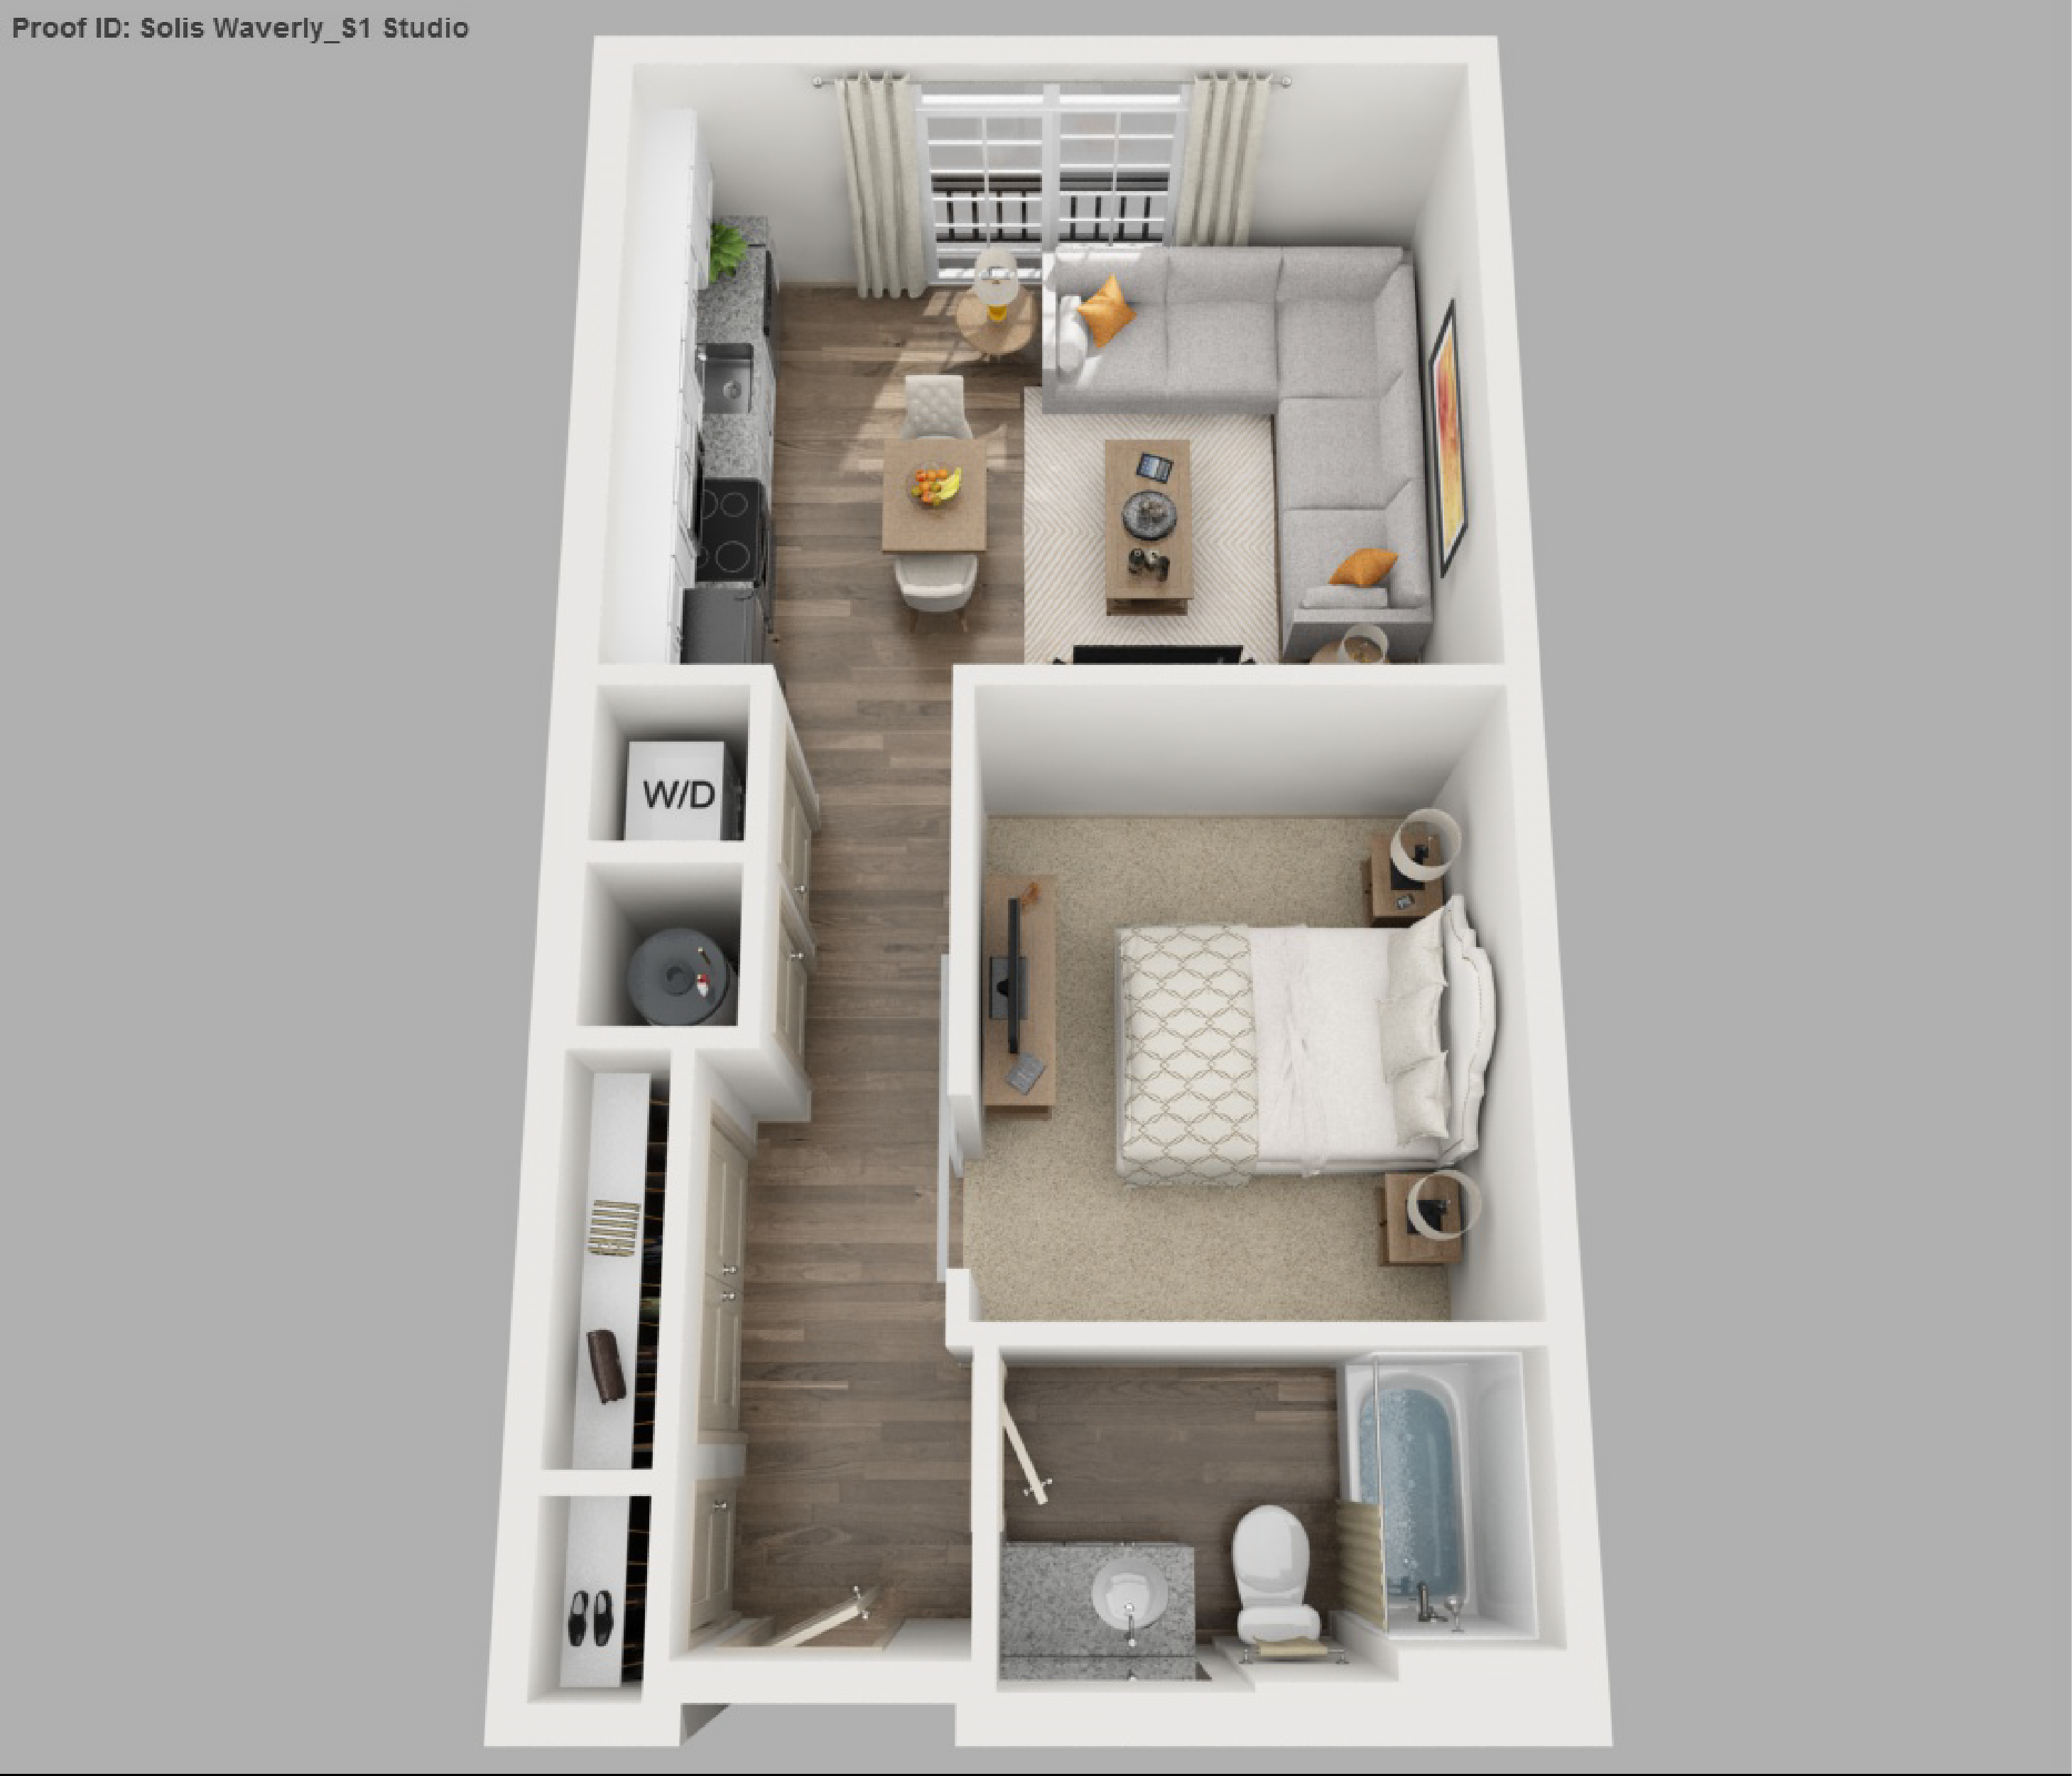 Solis apartments floorplans waverly for Small apartment layout plans